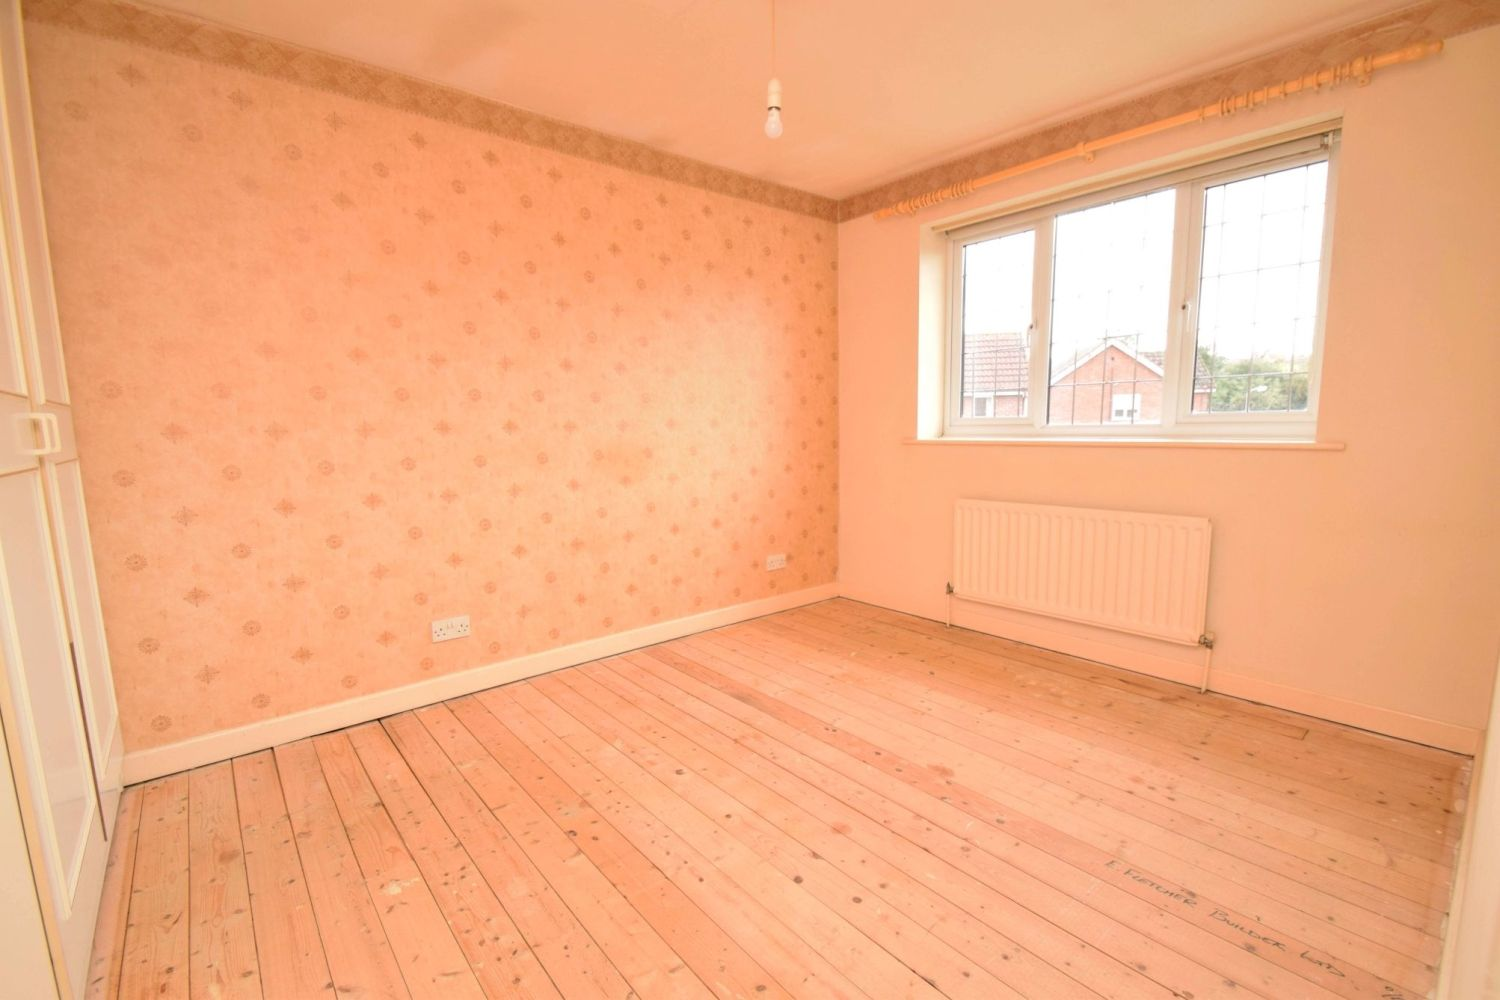 3 bed detached for sale in Avon Close, Stoke Heath, Bromsgrove, B60  - Property Image 7